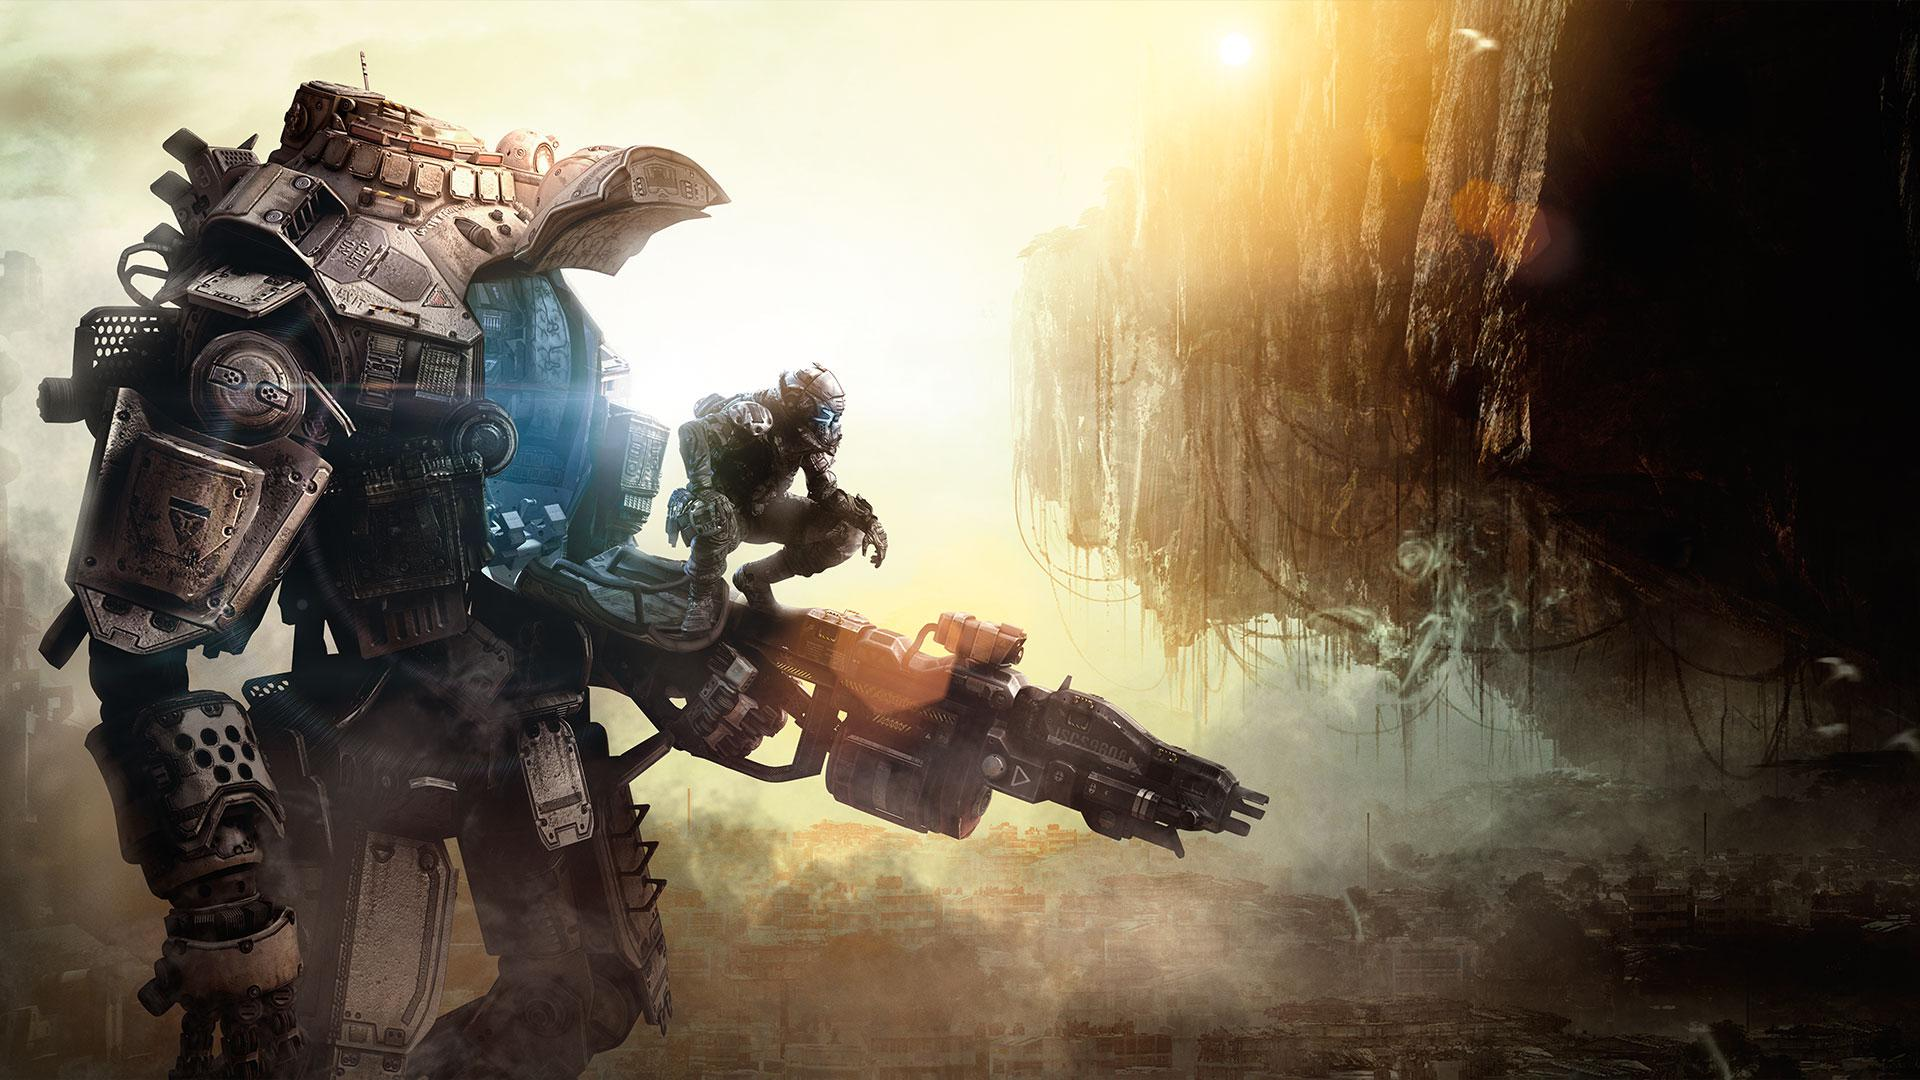 No Microtransactions In 'Titanfall'